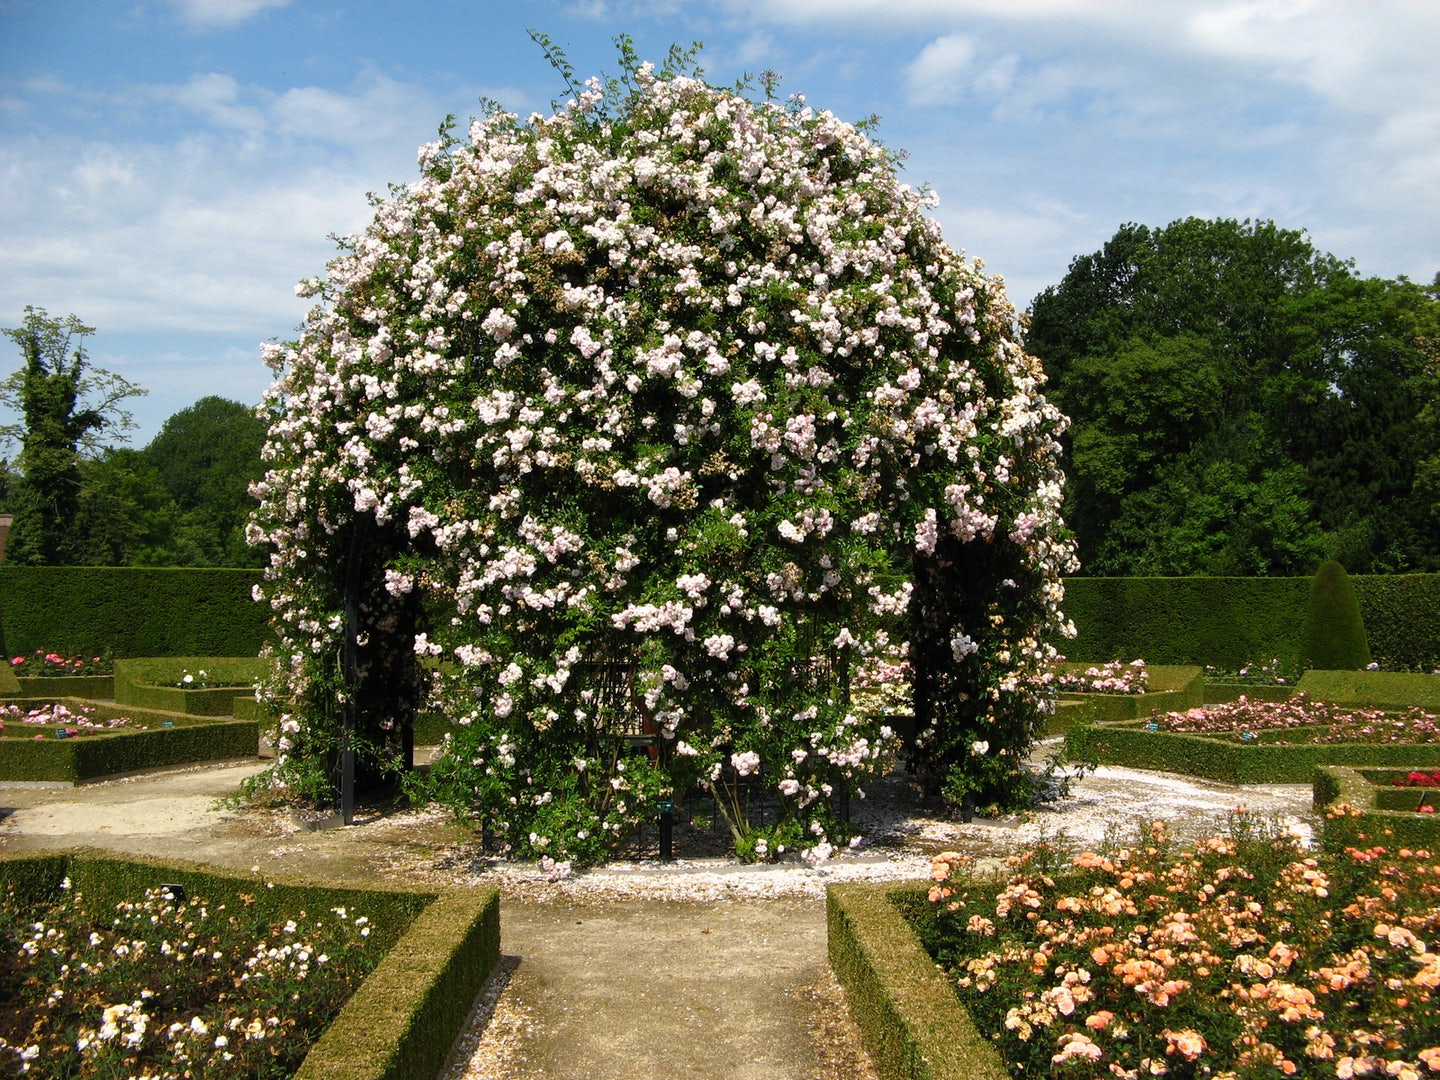 a giant bush of white roses at the Coloma Rose Garden